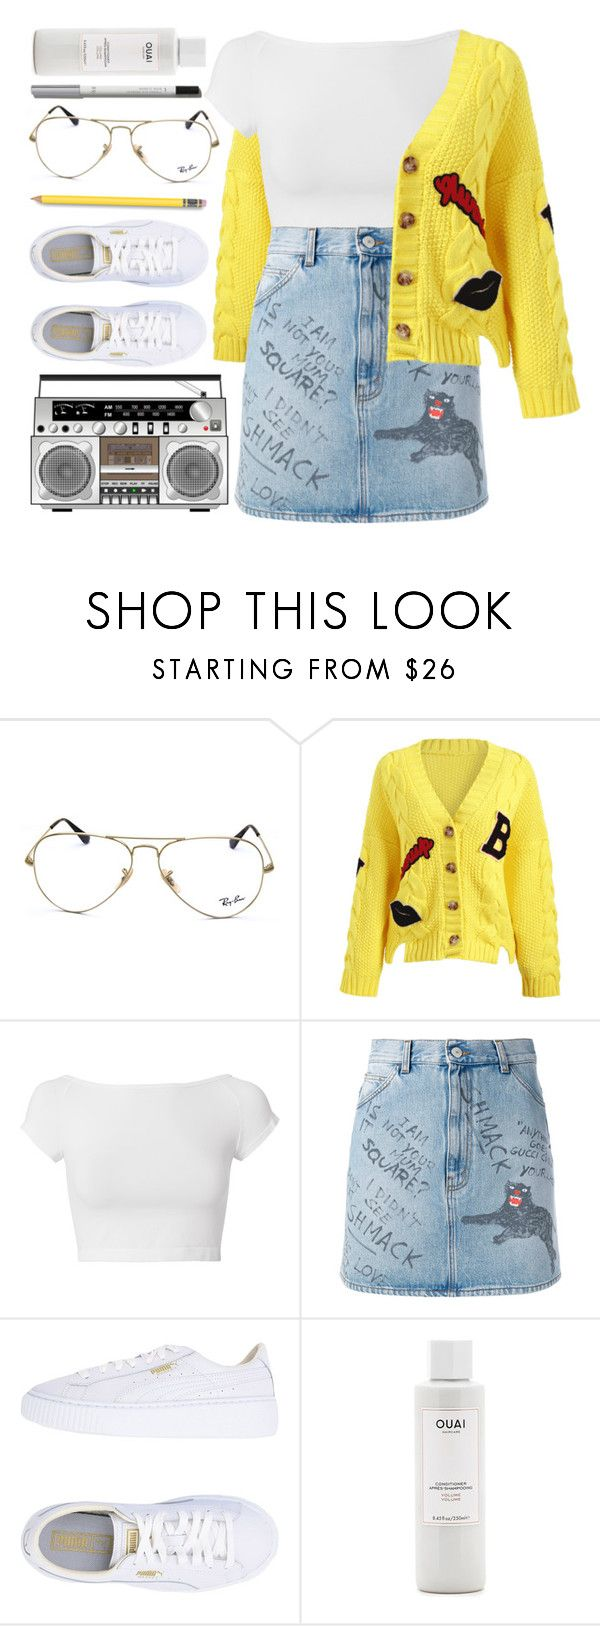 """Yellow Jumper"" by monmondefou ❤ liked on Polyvore featuring Ray-Ban, Helmut Lang, Gucci, Puma, Lumene, white and yellow"